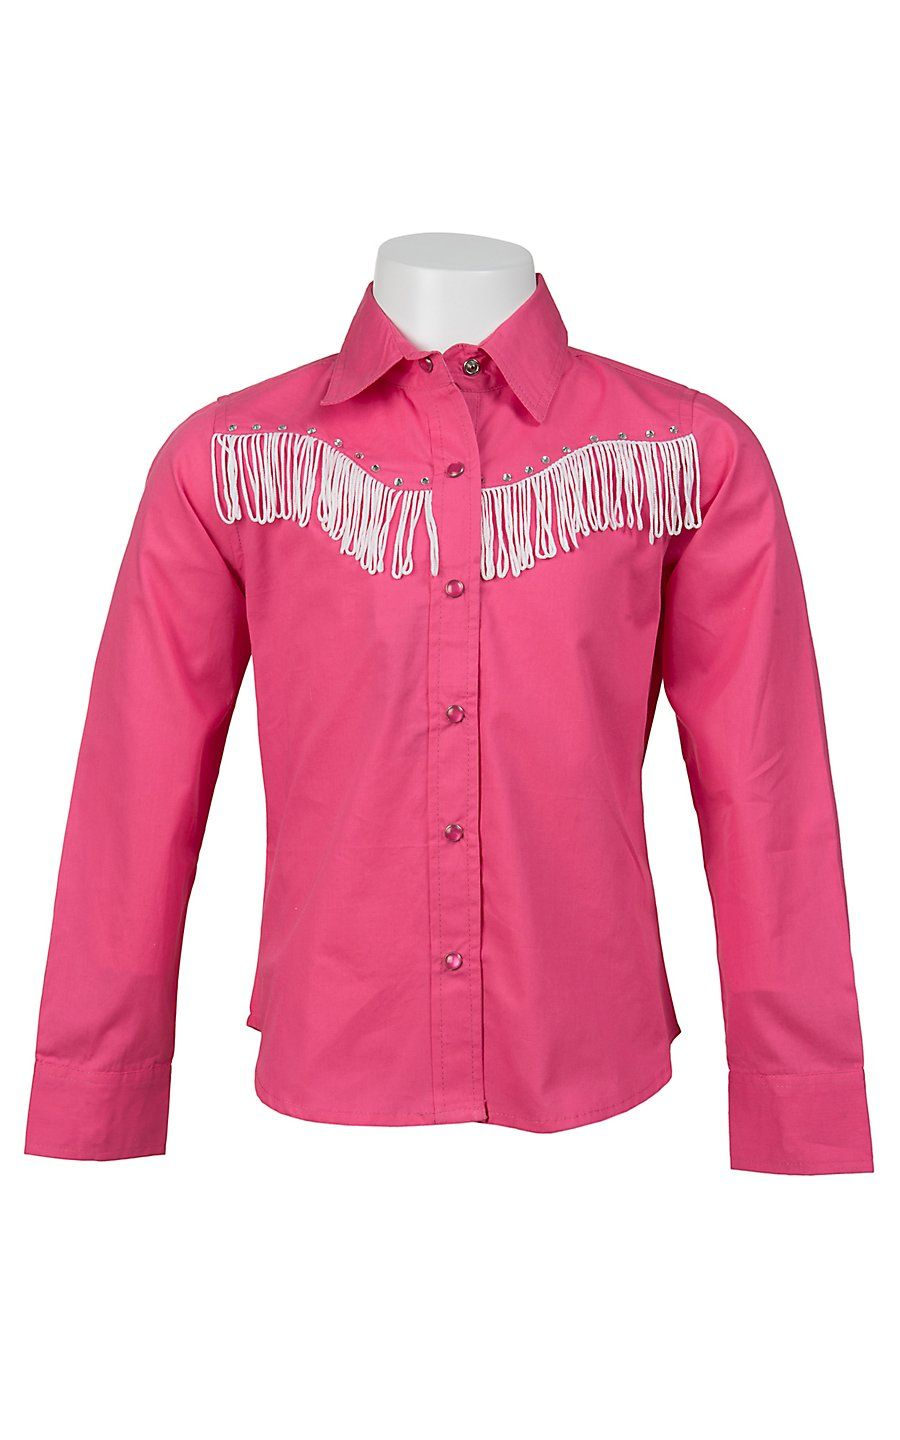 715323a659c29 Cumberland Outfitters® Girl s Hot Pink with White Fringe   Rhinestones Long  Sleeve Western Shirt